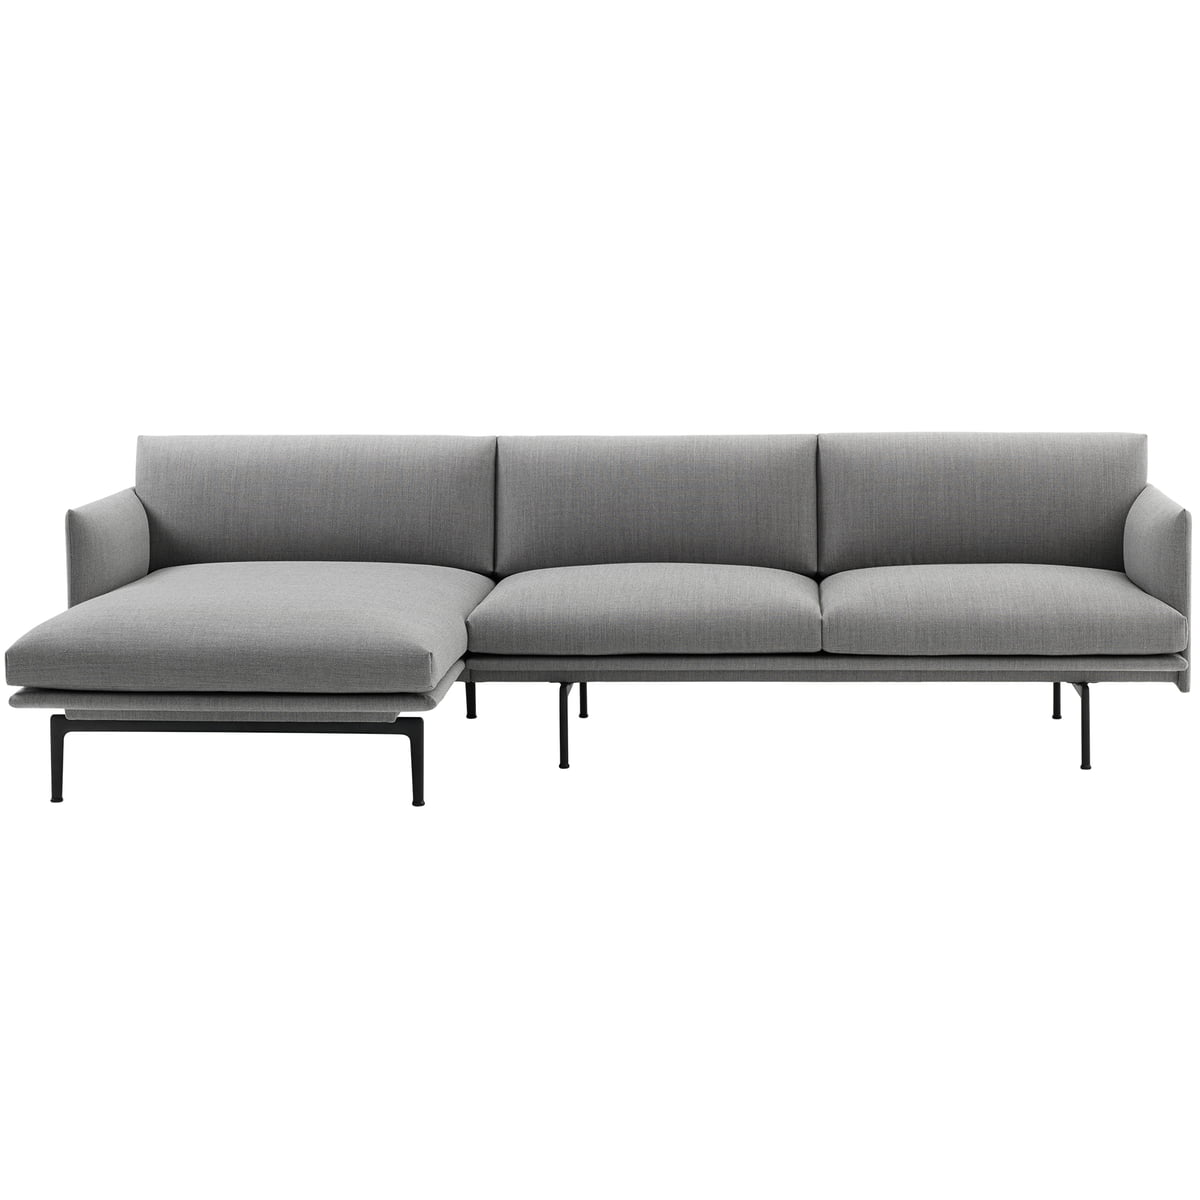 Outline Chaise Longue Sofa By Muuto